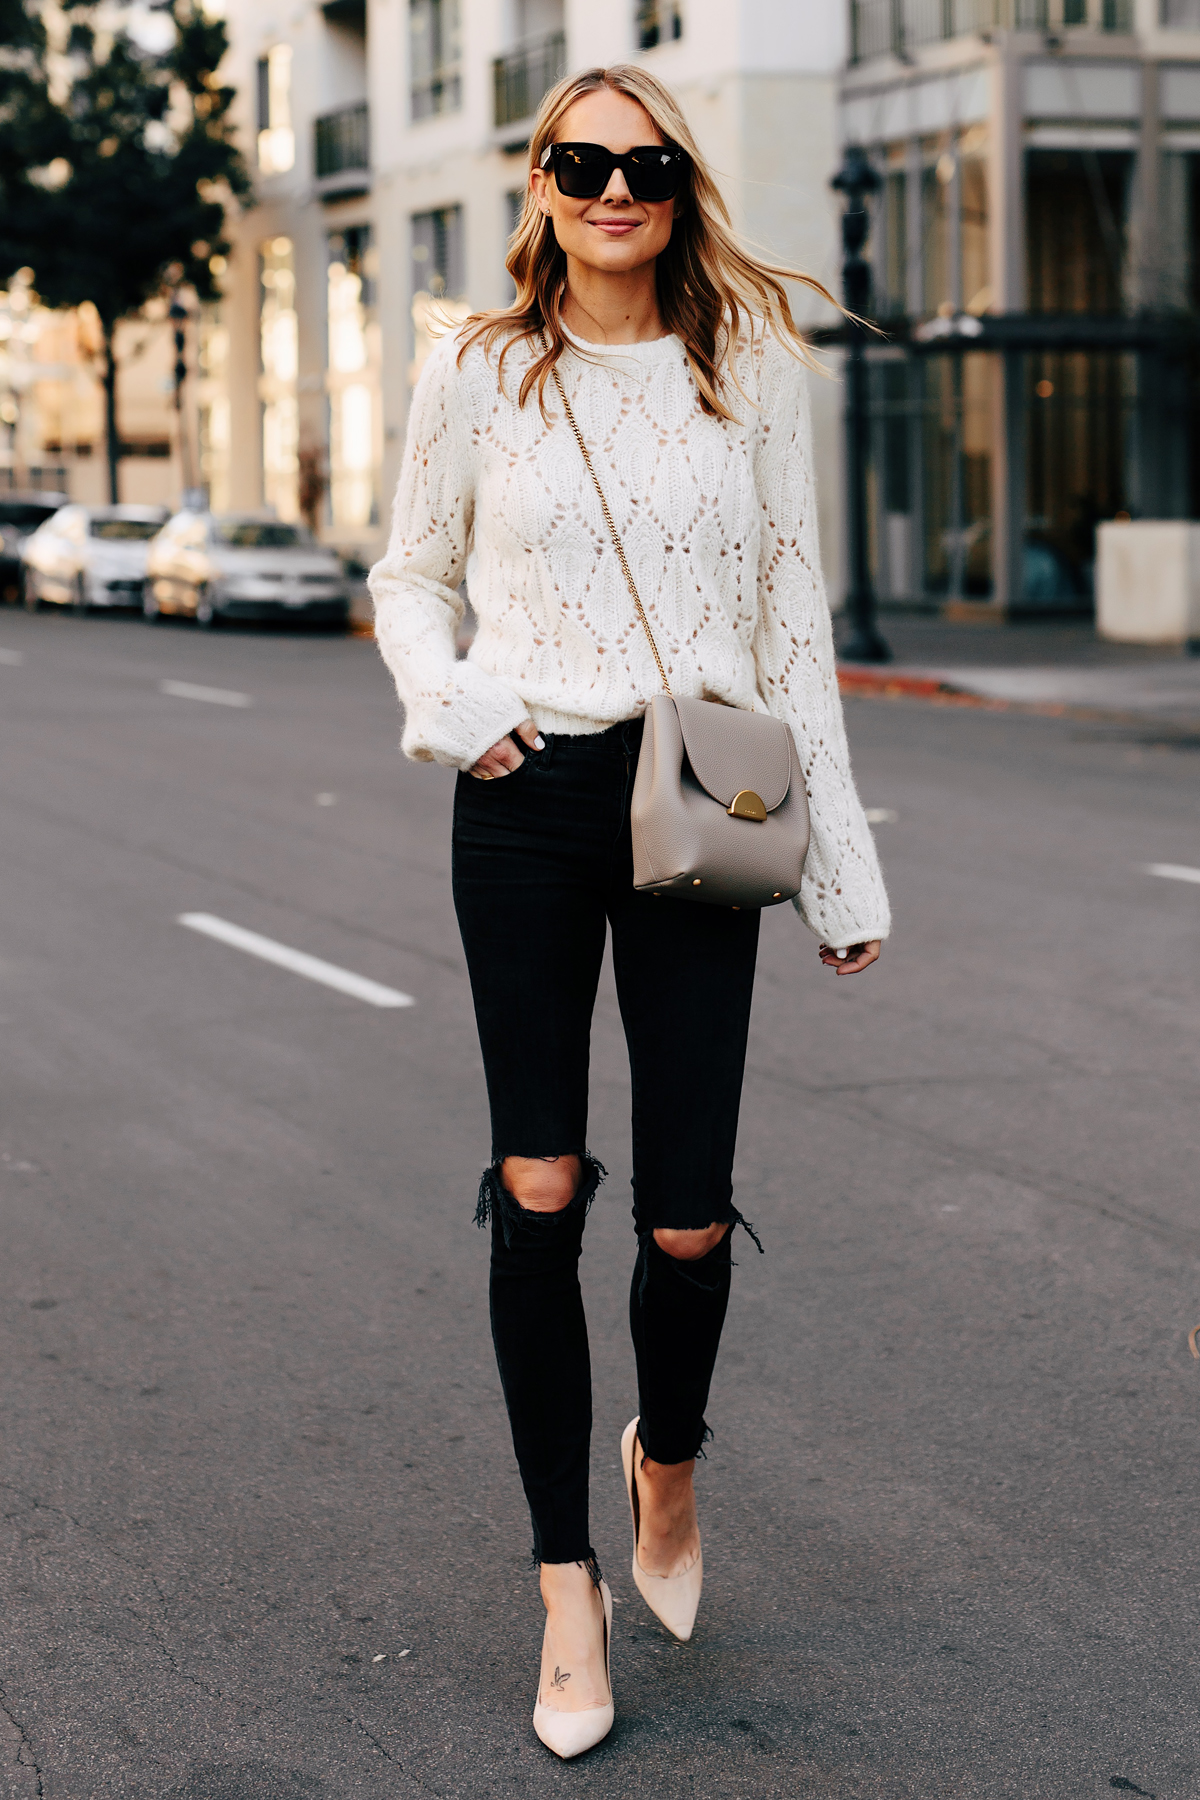 Blonde Woman Wearing White Pointelle Sweater Black Skinny Jeans Polene Grey Handbag Fashion Jackson San Diego Fashion Blogger Street Style